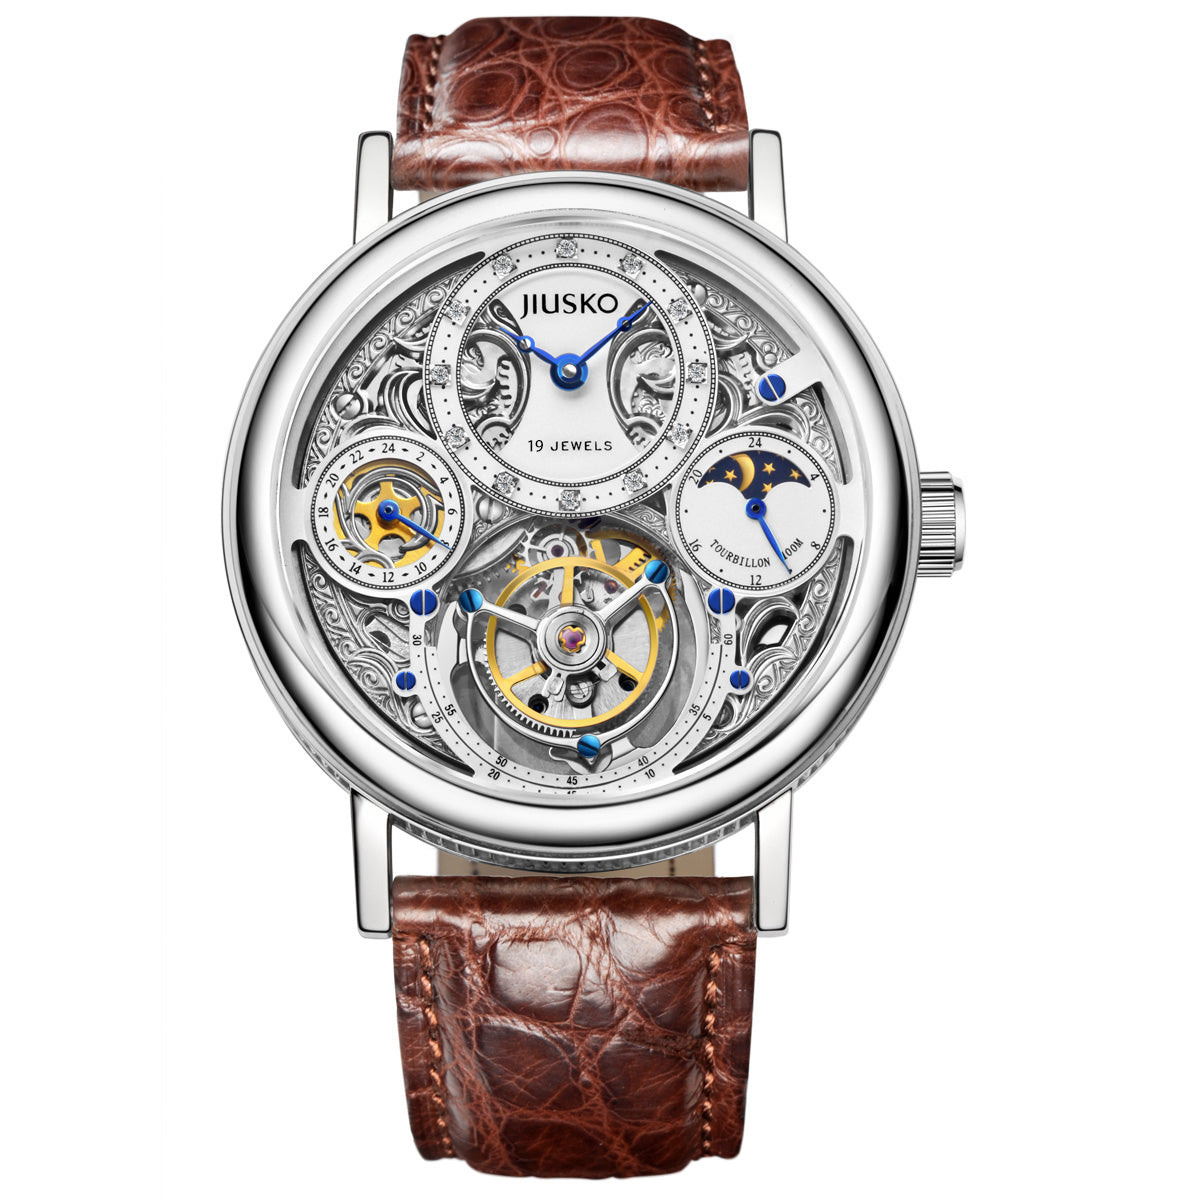 JIUSKO Men's Mechanical Hand-wind Tourbillon Wristwatch with Genuine Diamond Hour Markers and Sapphire Crystals and Brown Alligator Strap